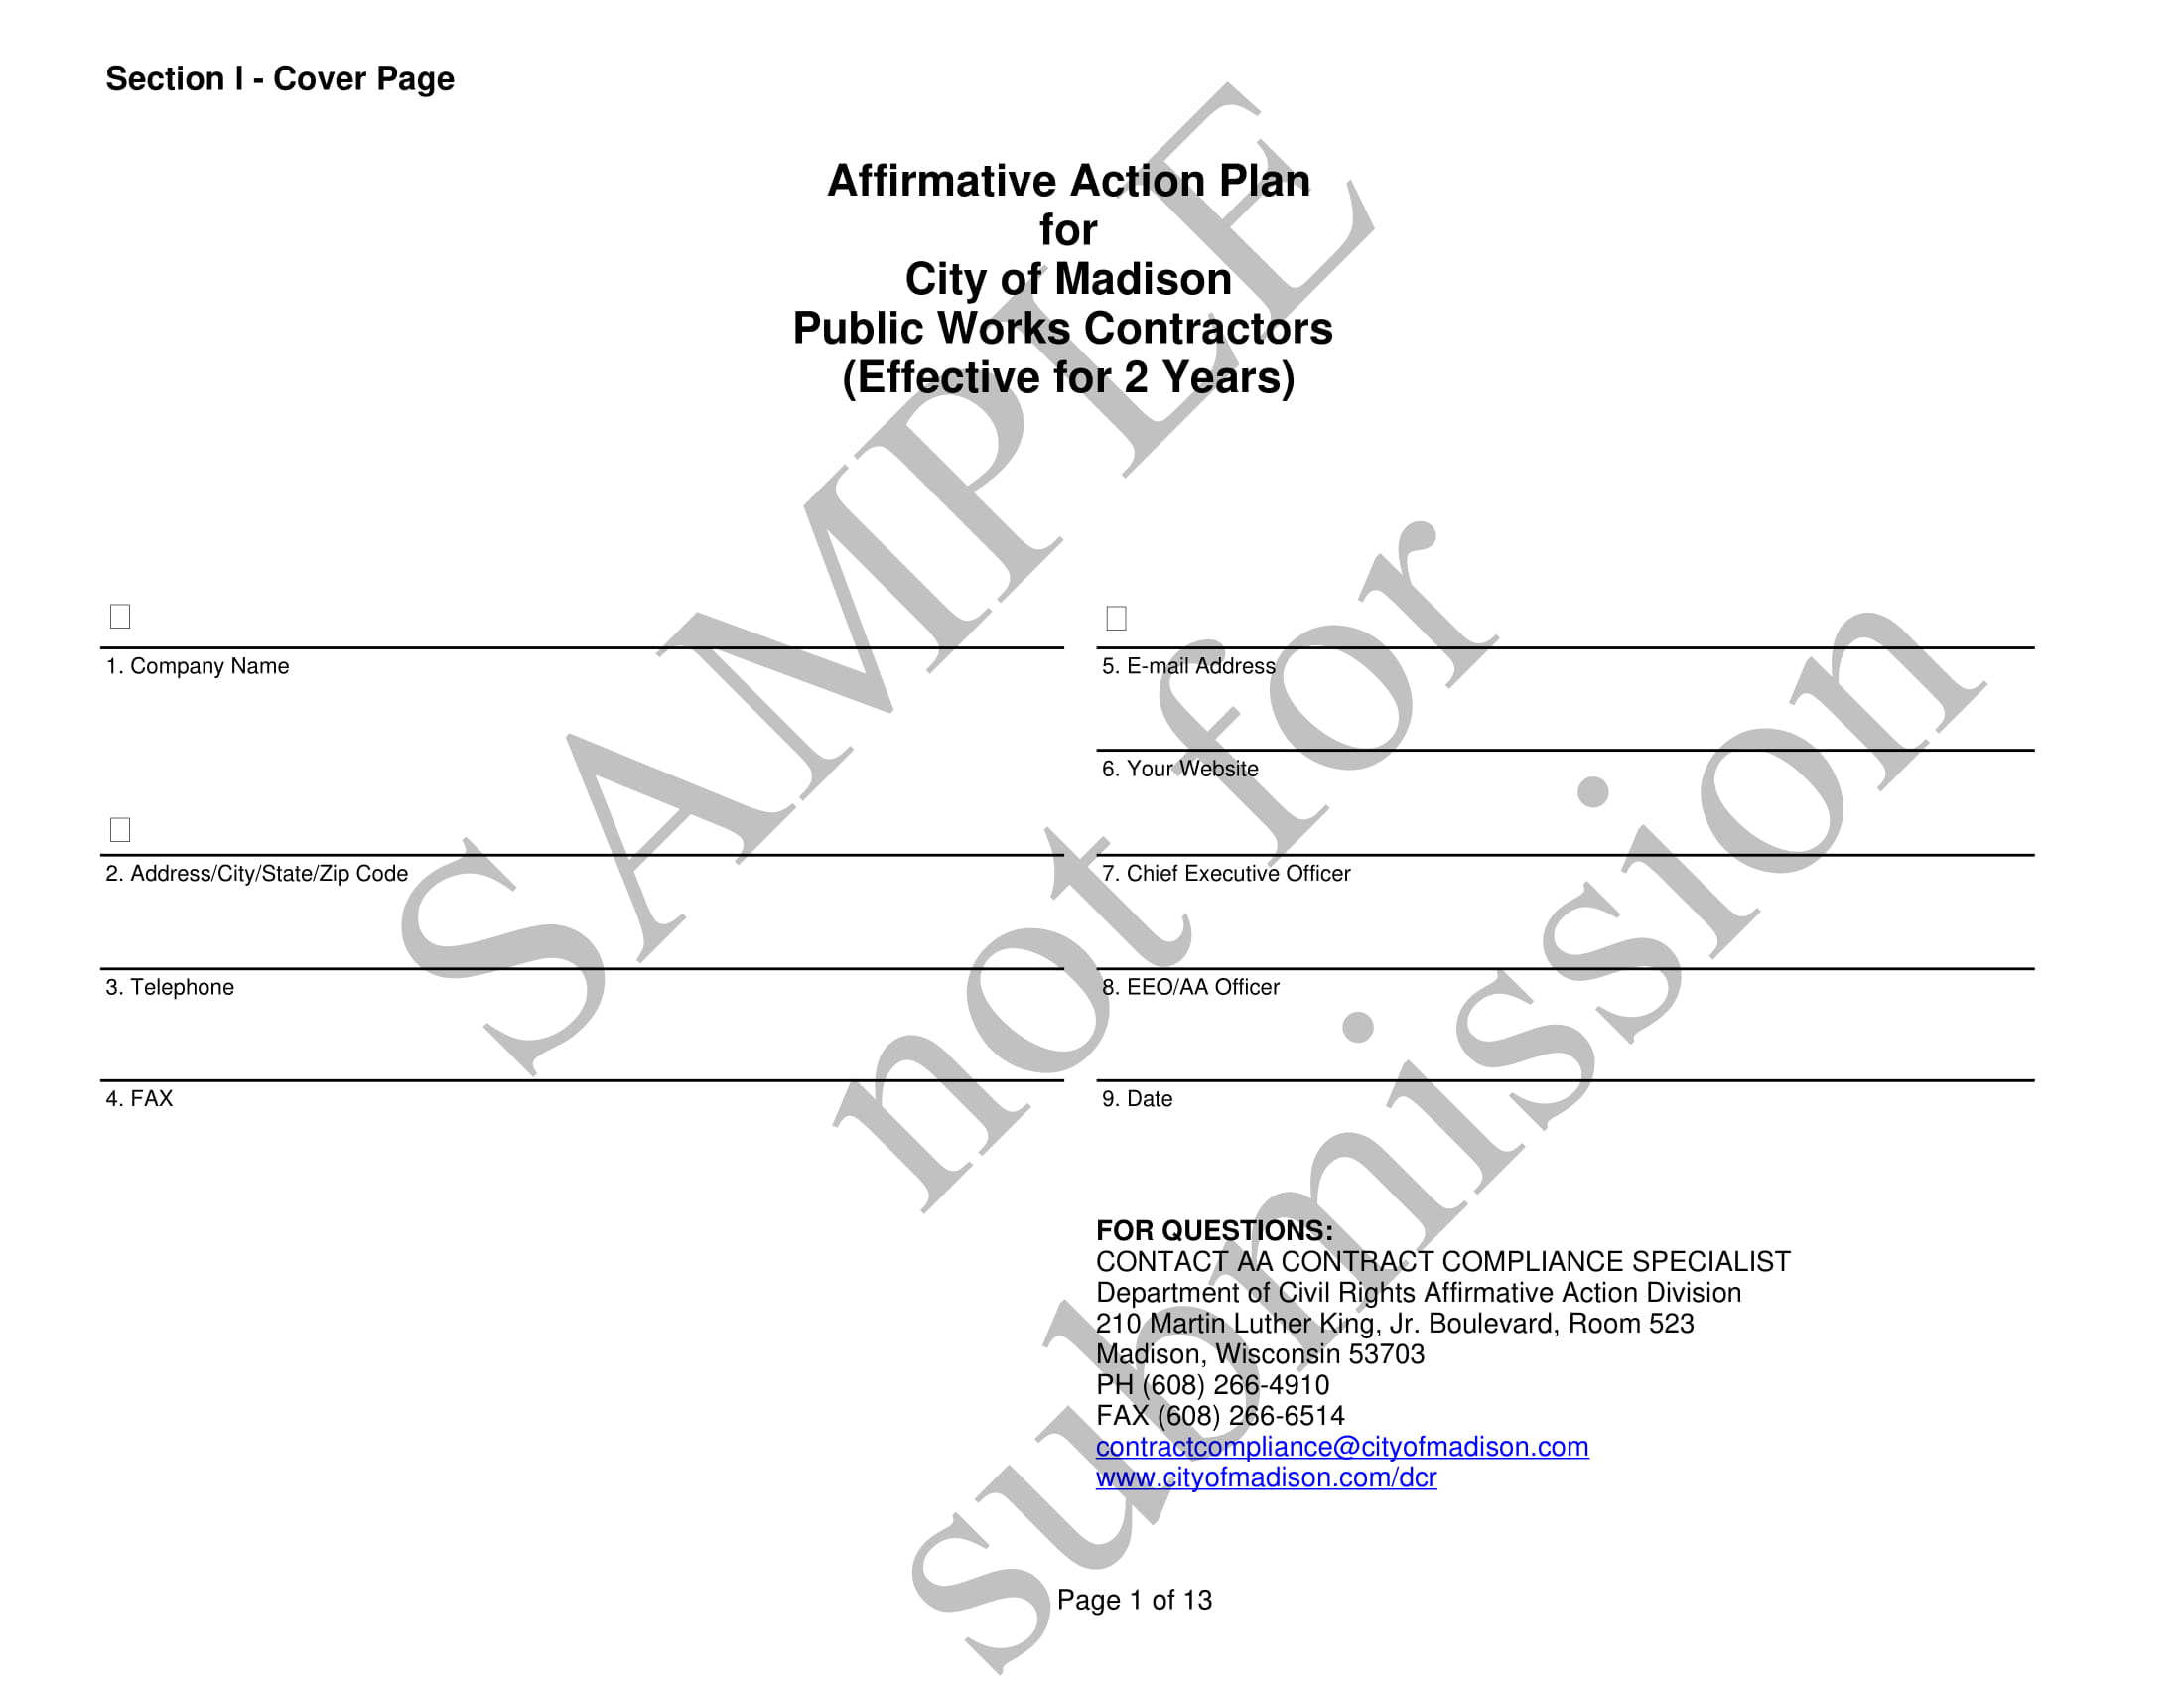 affirmative action plan for public works contractors example 01